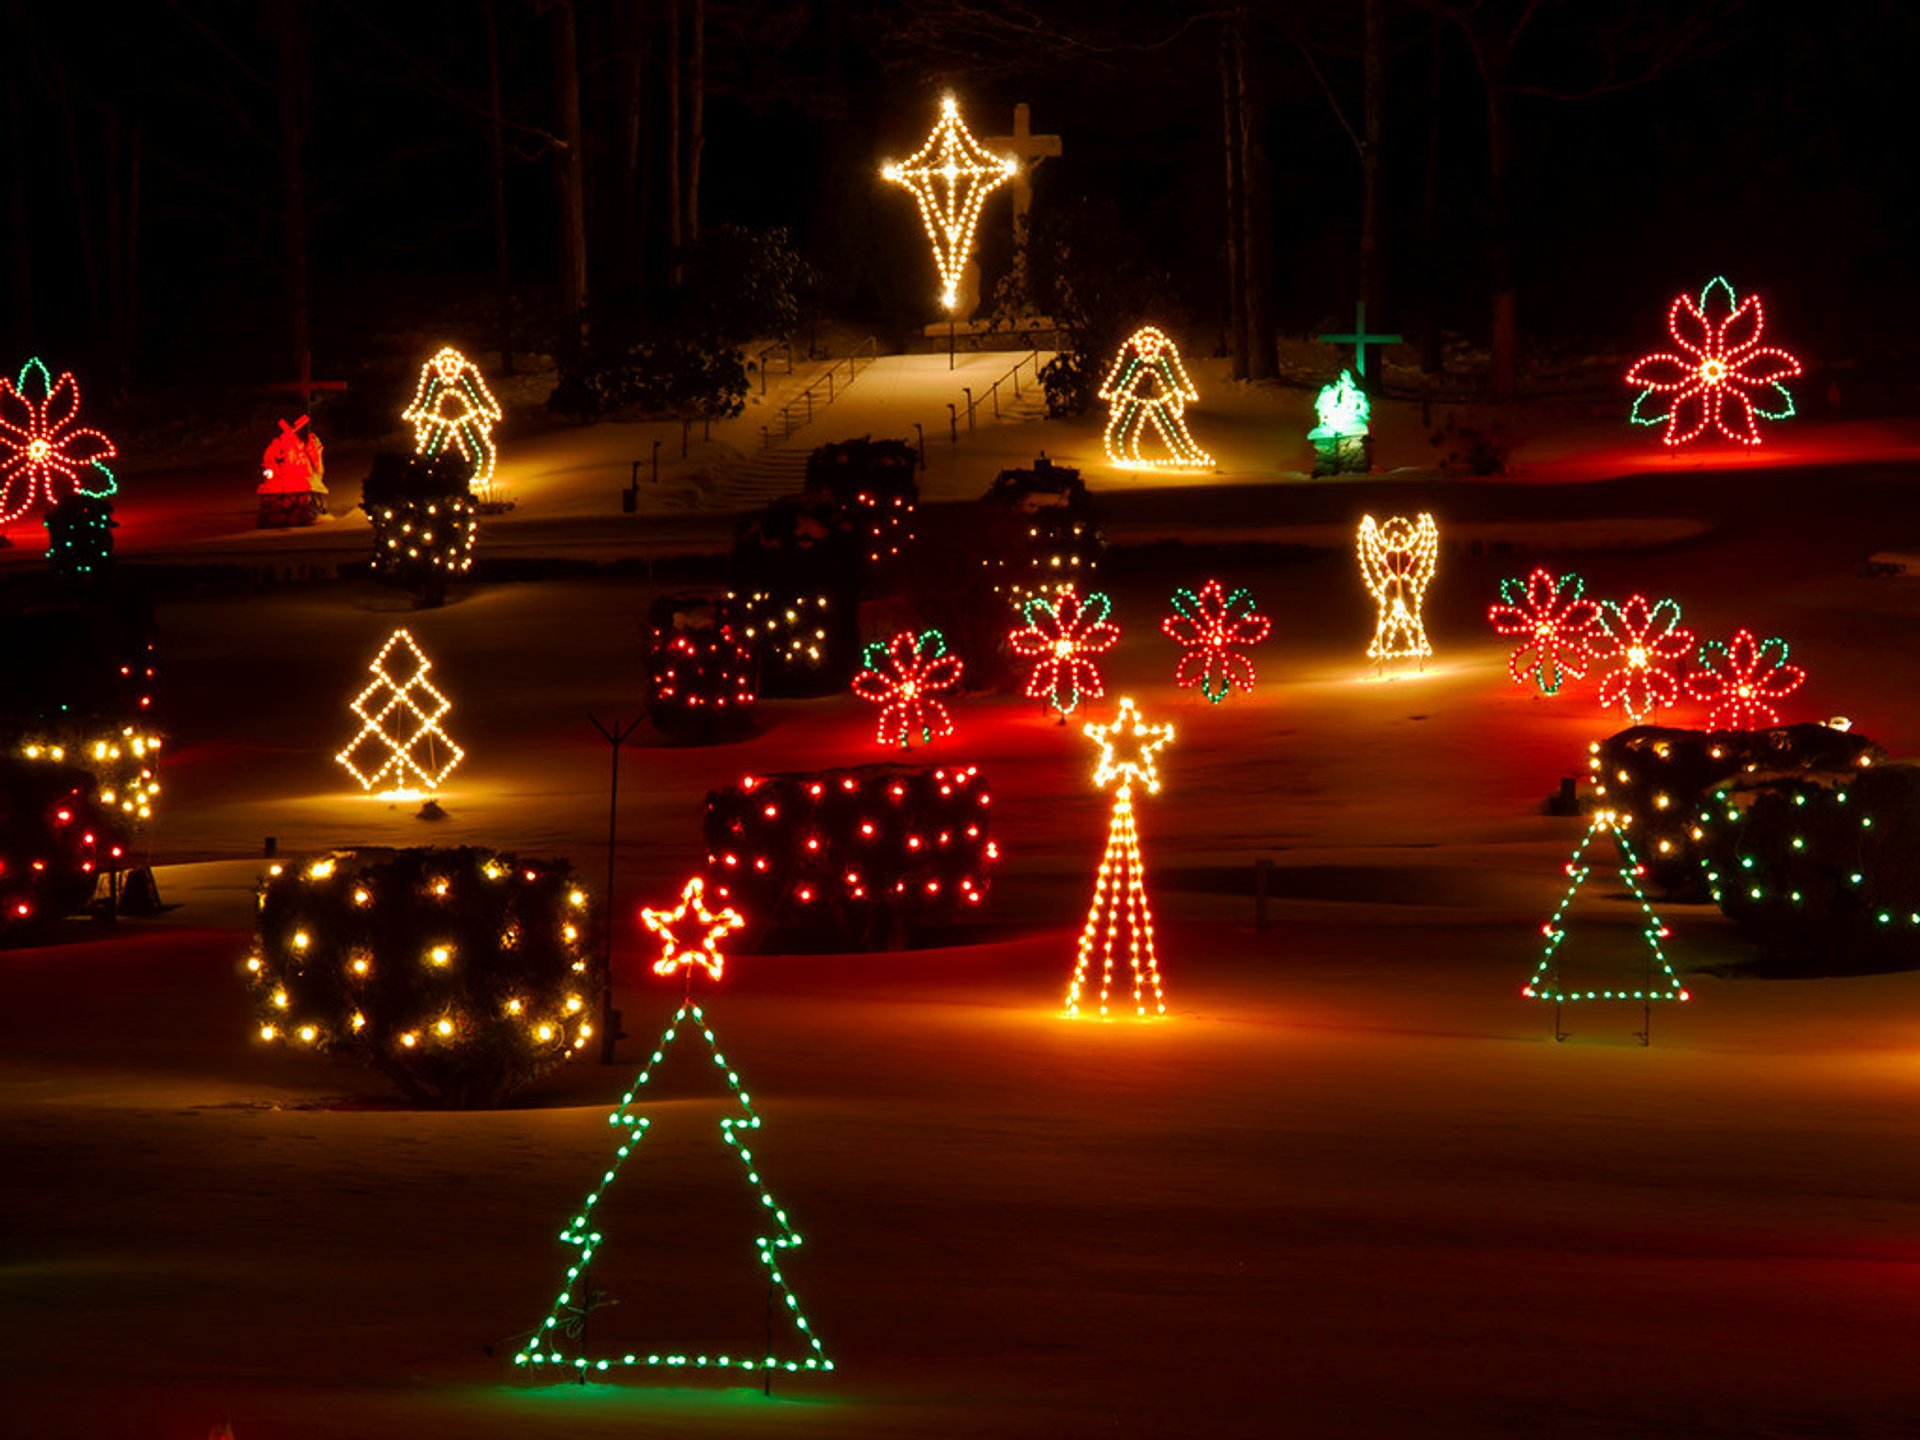 Loudon Christmas Lights 2020 Christmas Lights 2020 2021 in New Hampshire   Dates